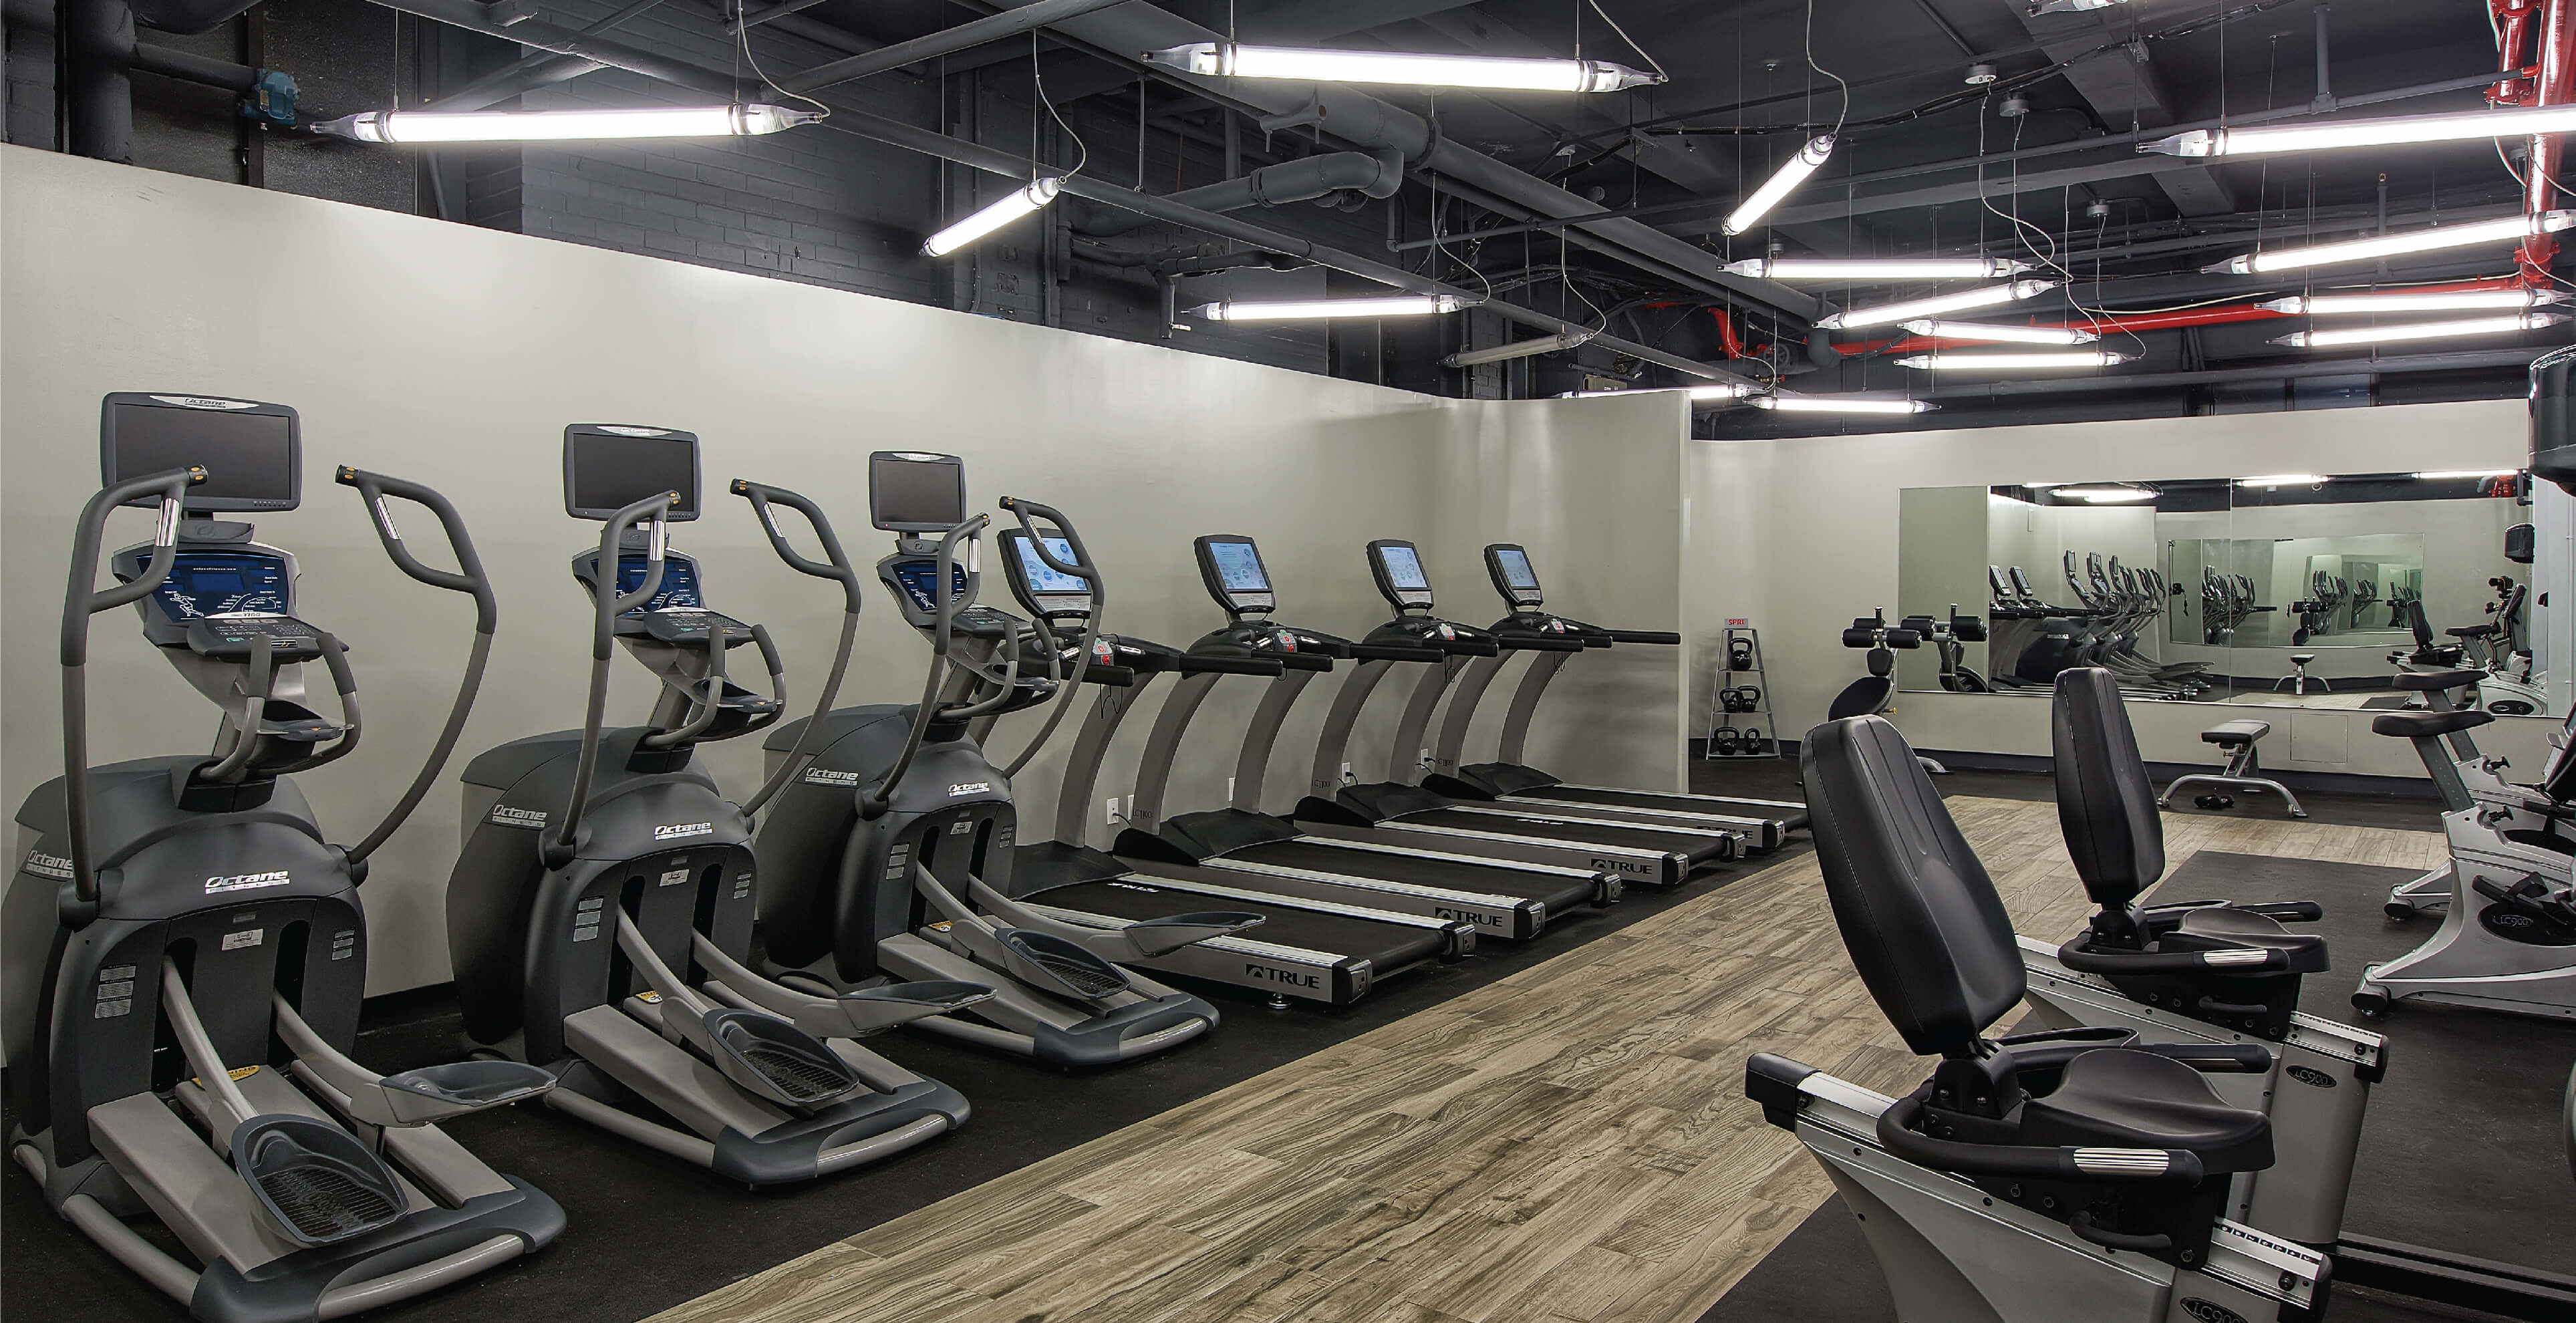 windermere building gym image